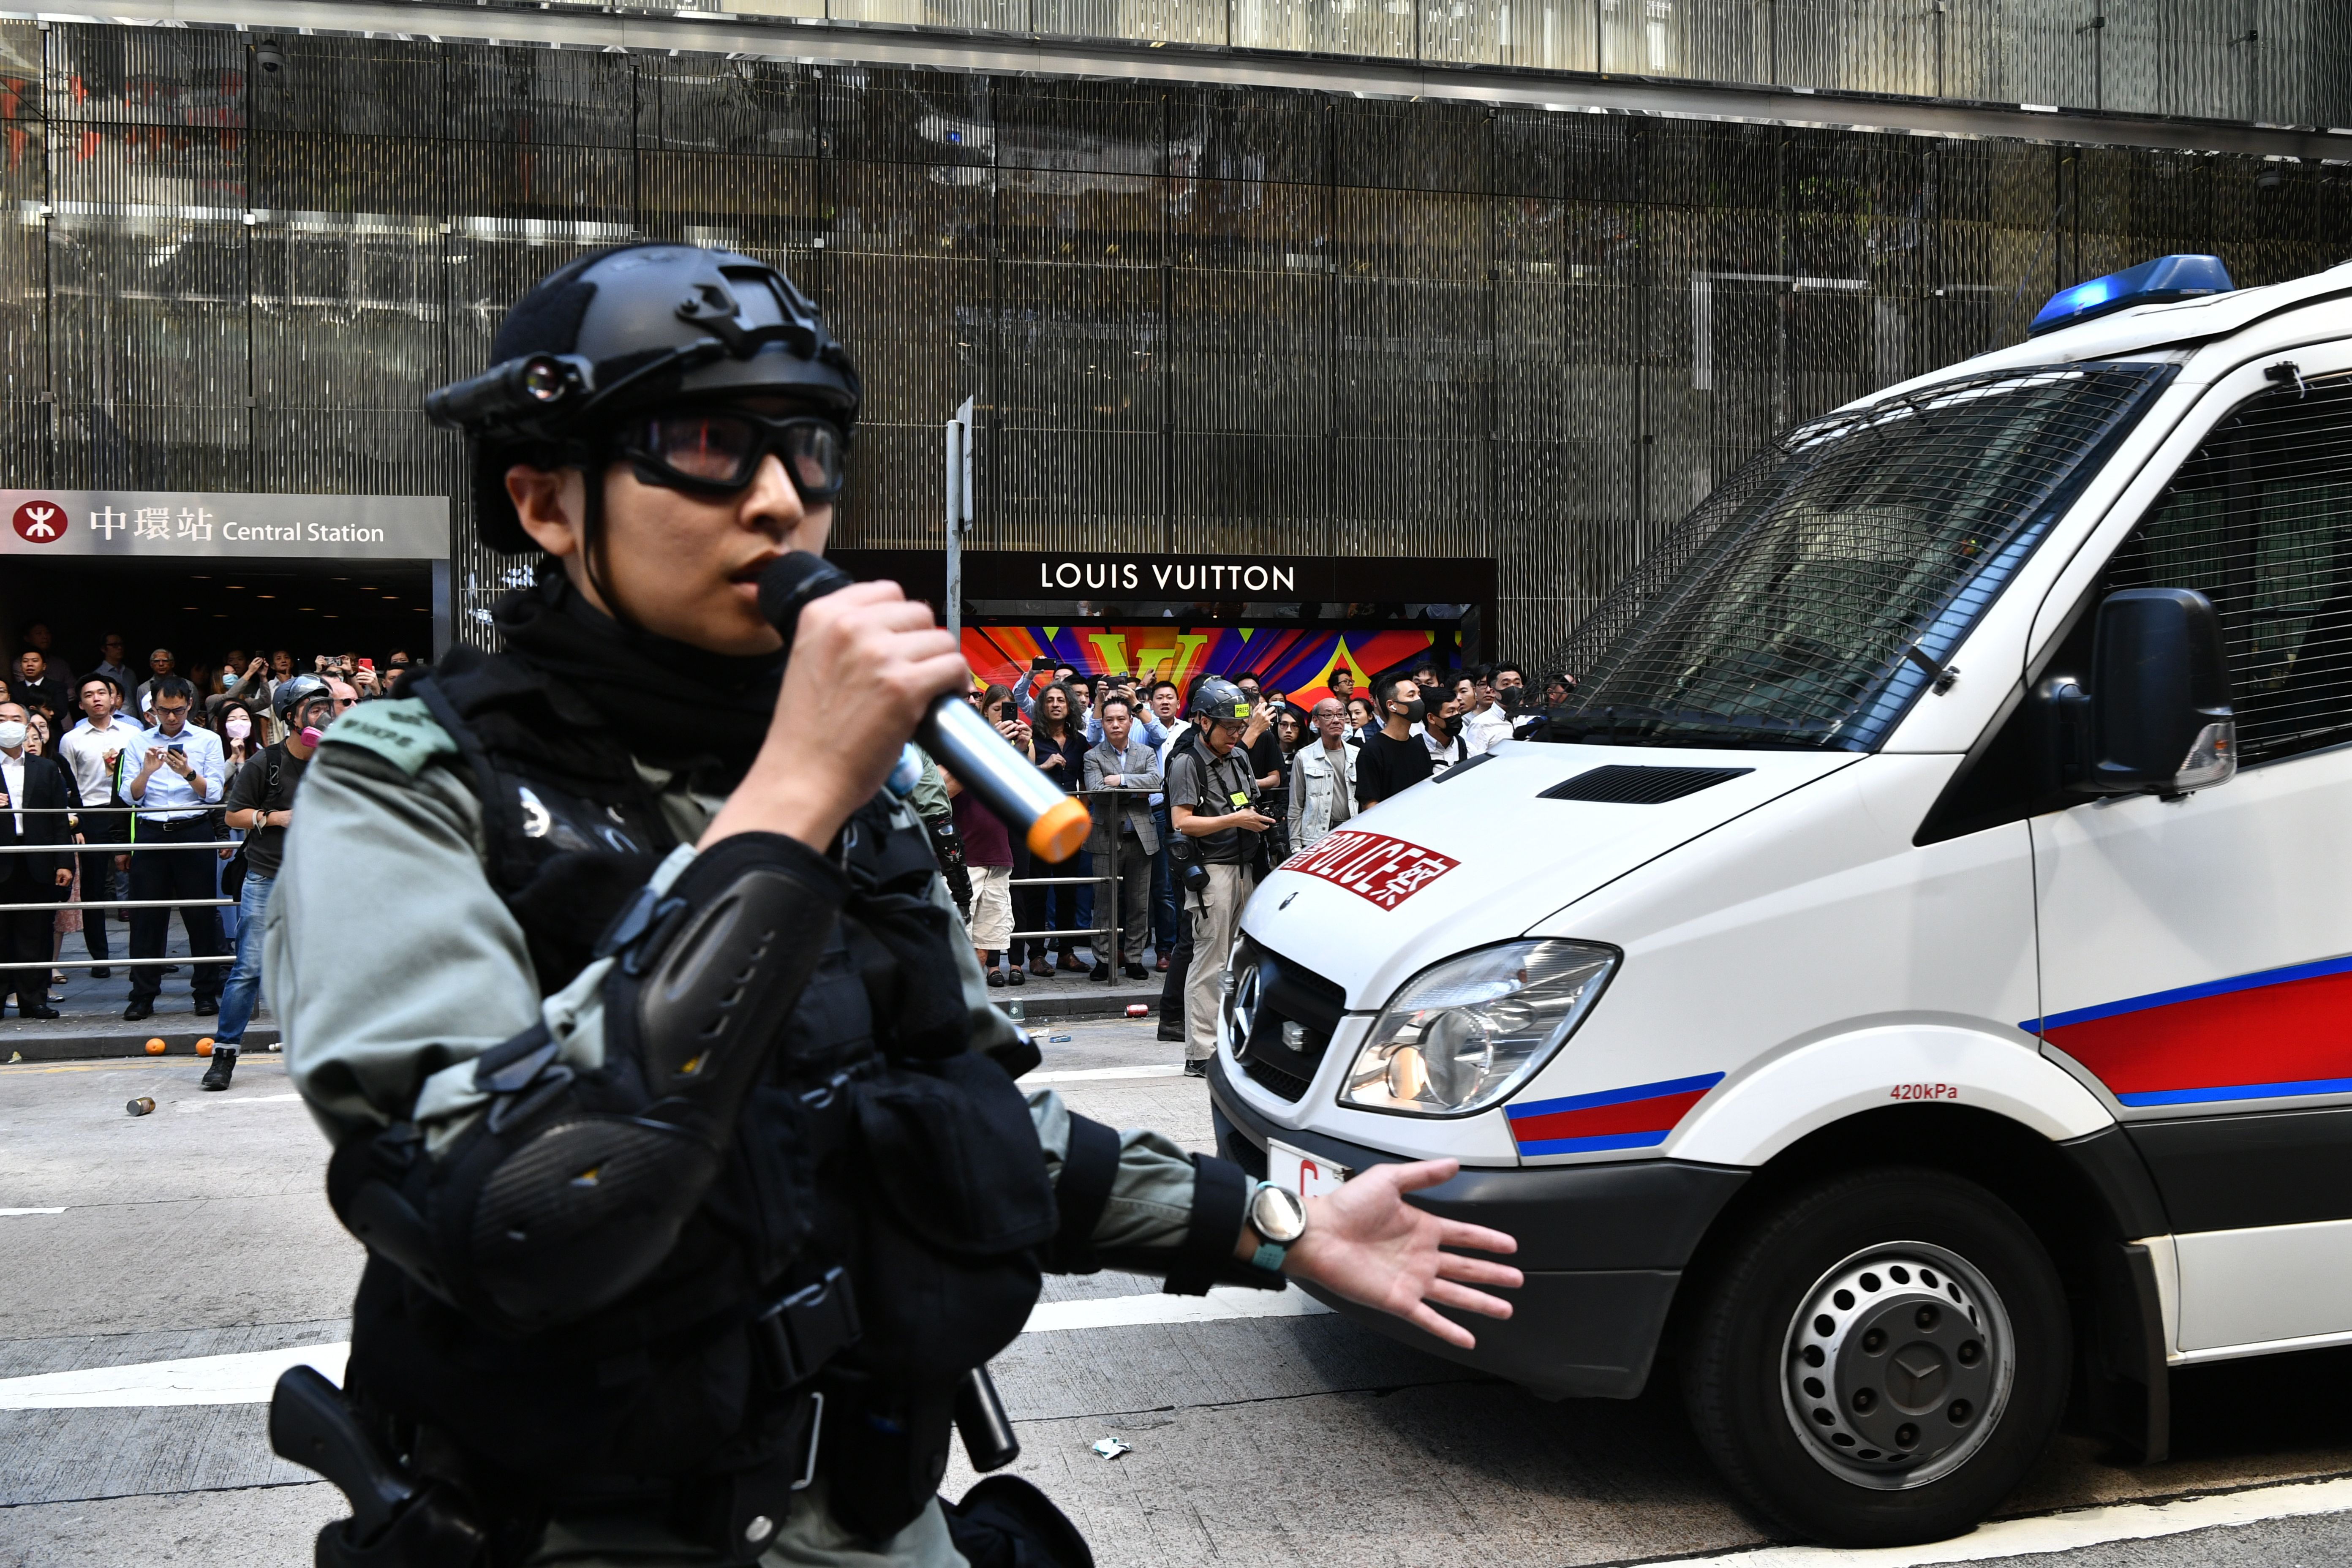 A police officer addresses protesters in Hong Kong on November 11, 2019.